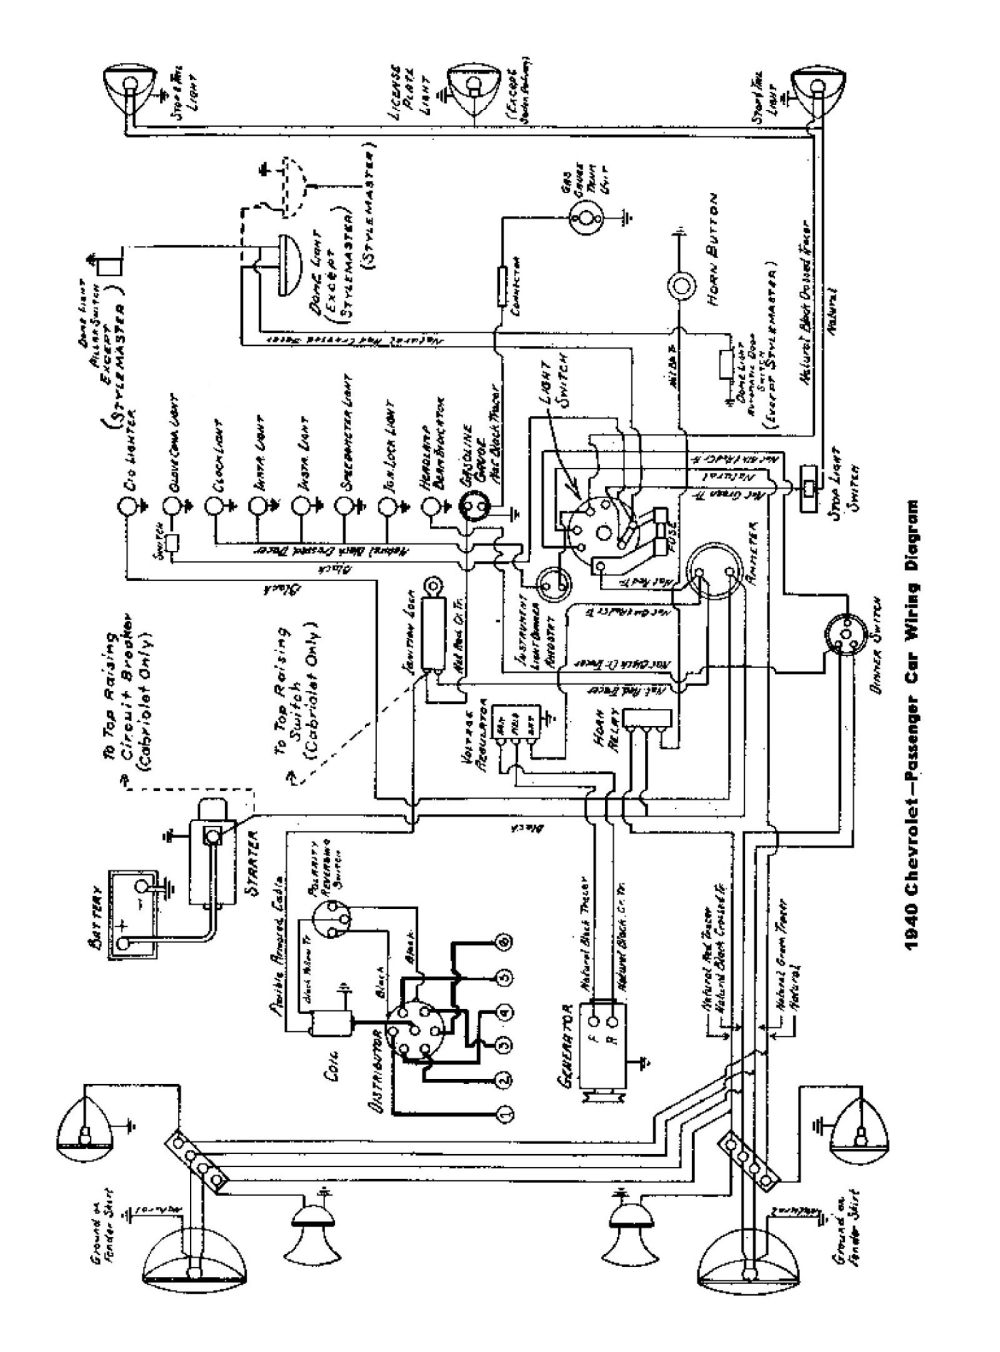 medium resolution of wiring diagram 1947 1953 also 1941 chevy special deluxe moreover ford truck wiring moreover 1947 chevy pickup truck moreover 1951 chevy